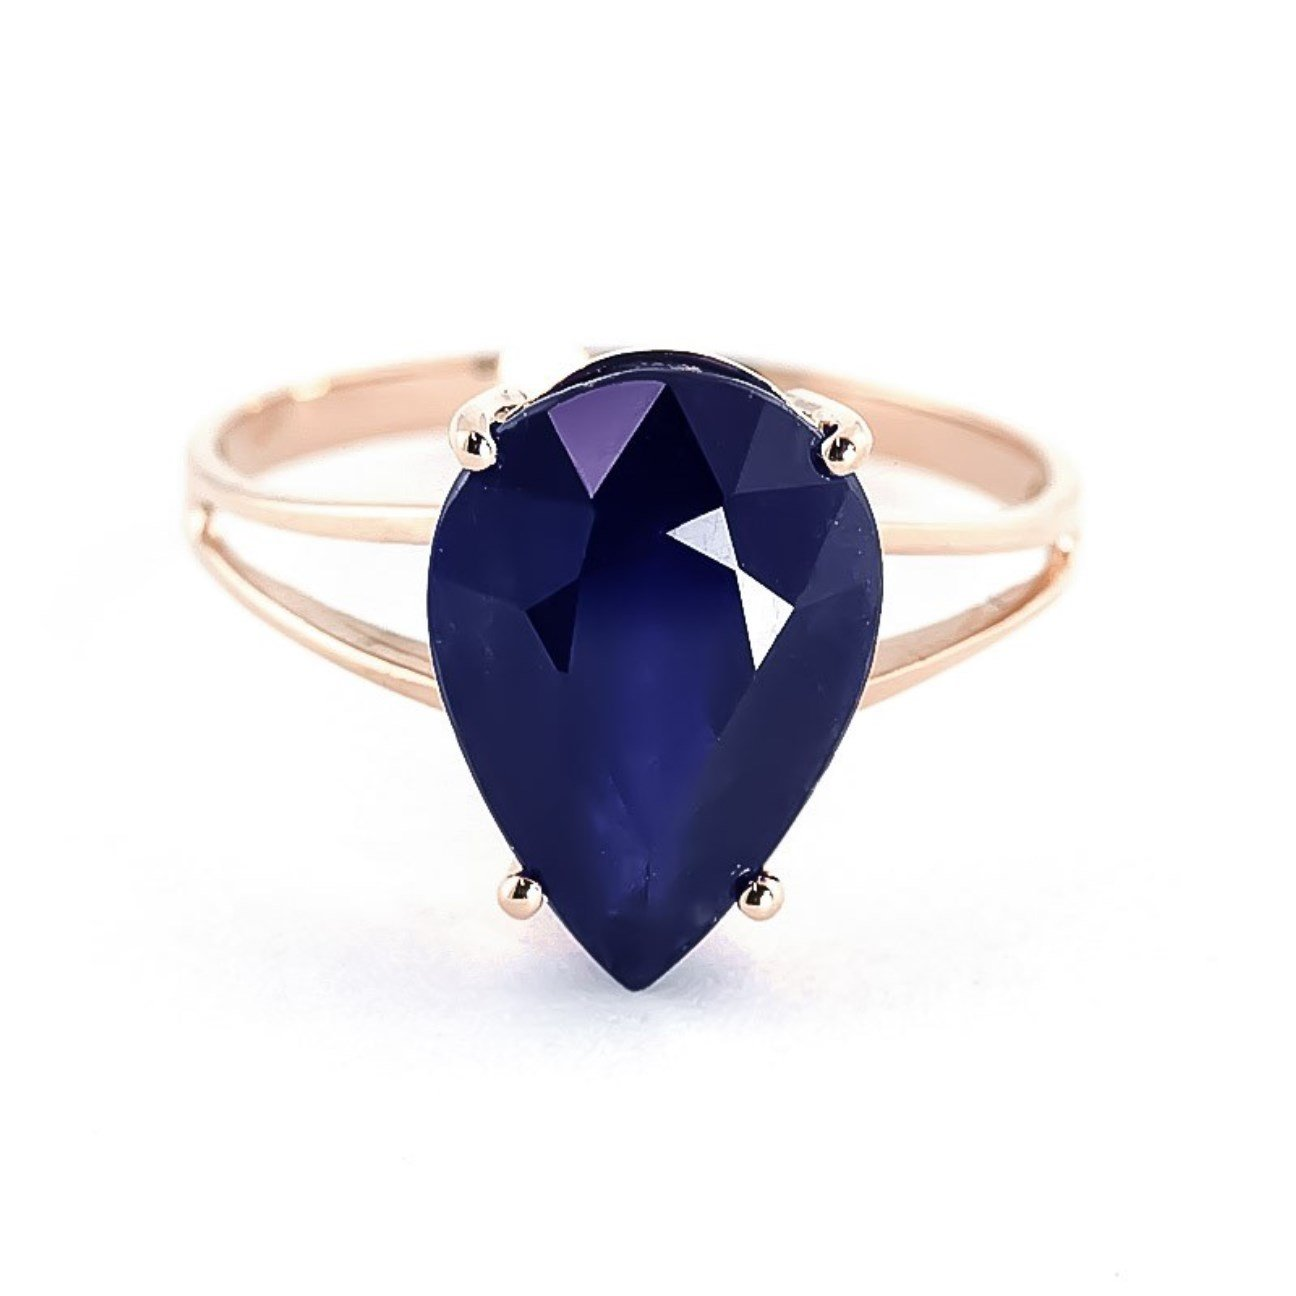 4.65 ctw 14K Solid Rose Gold Pear Shape Sapphire September Birthstone Ring 4305-R